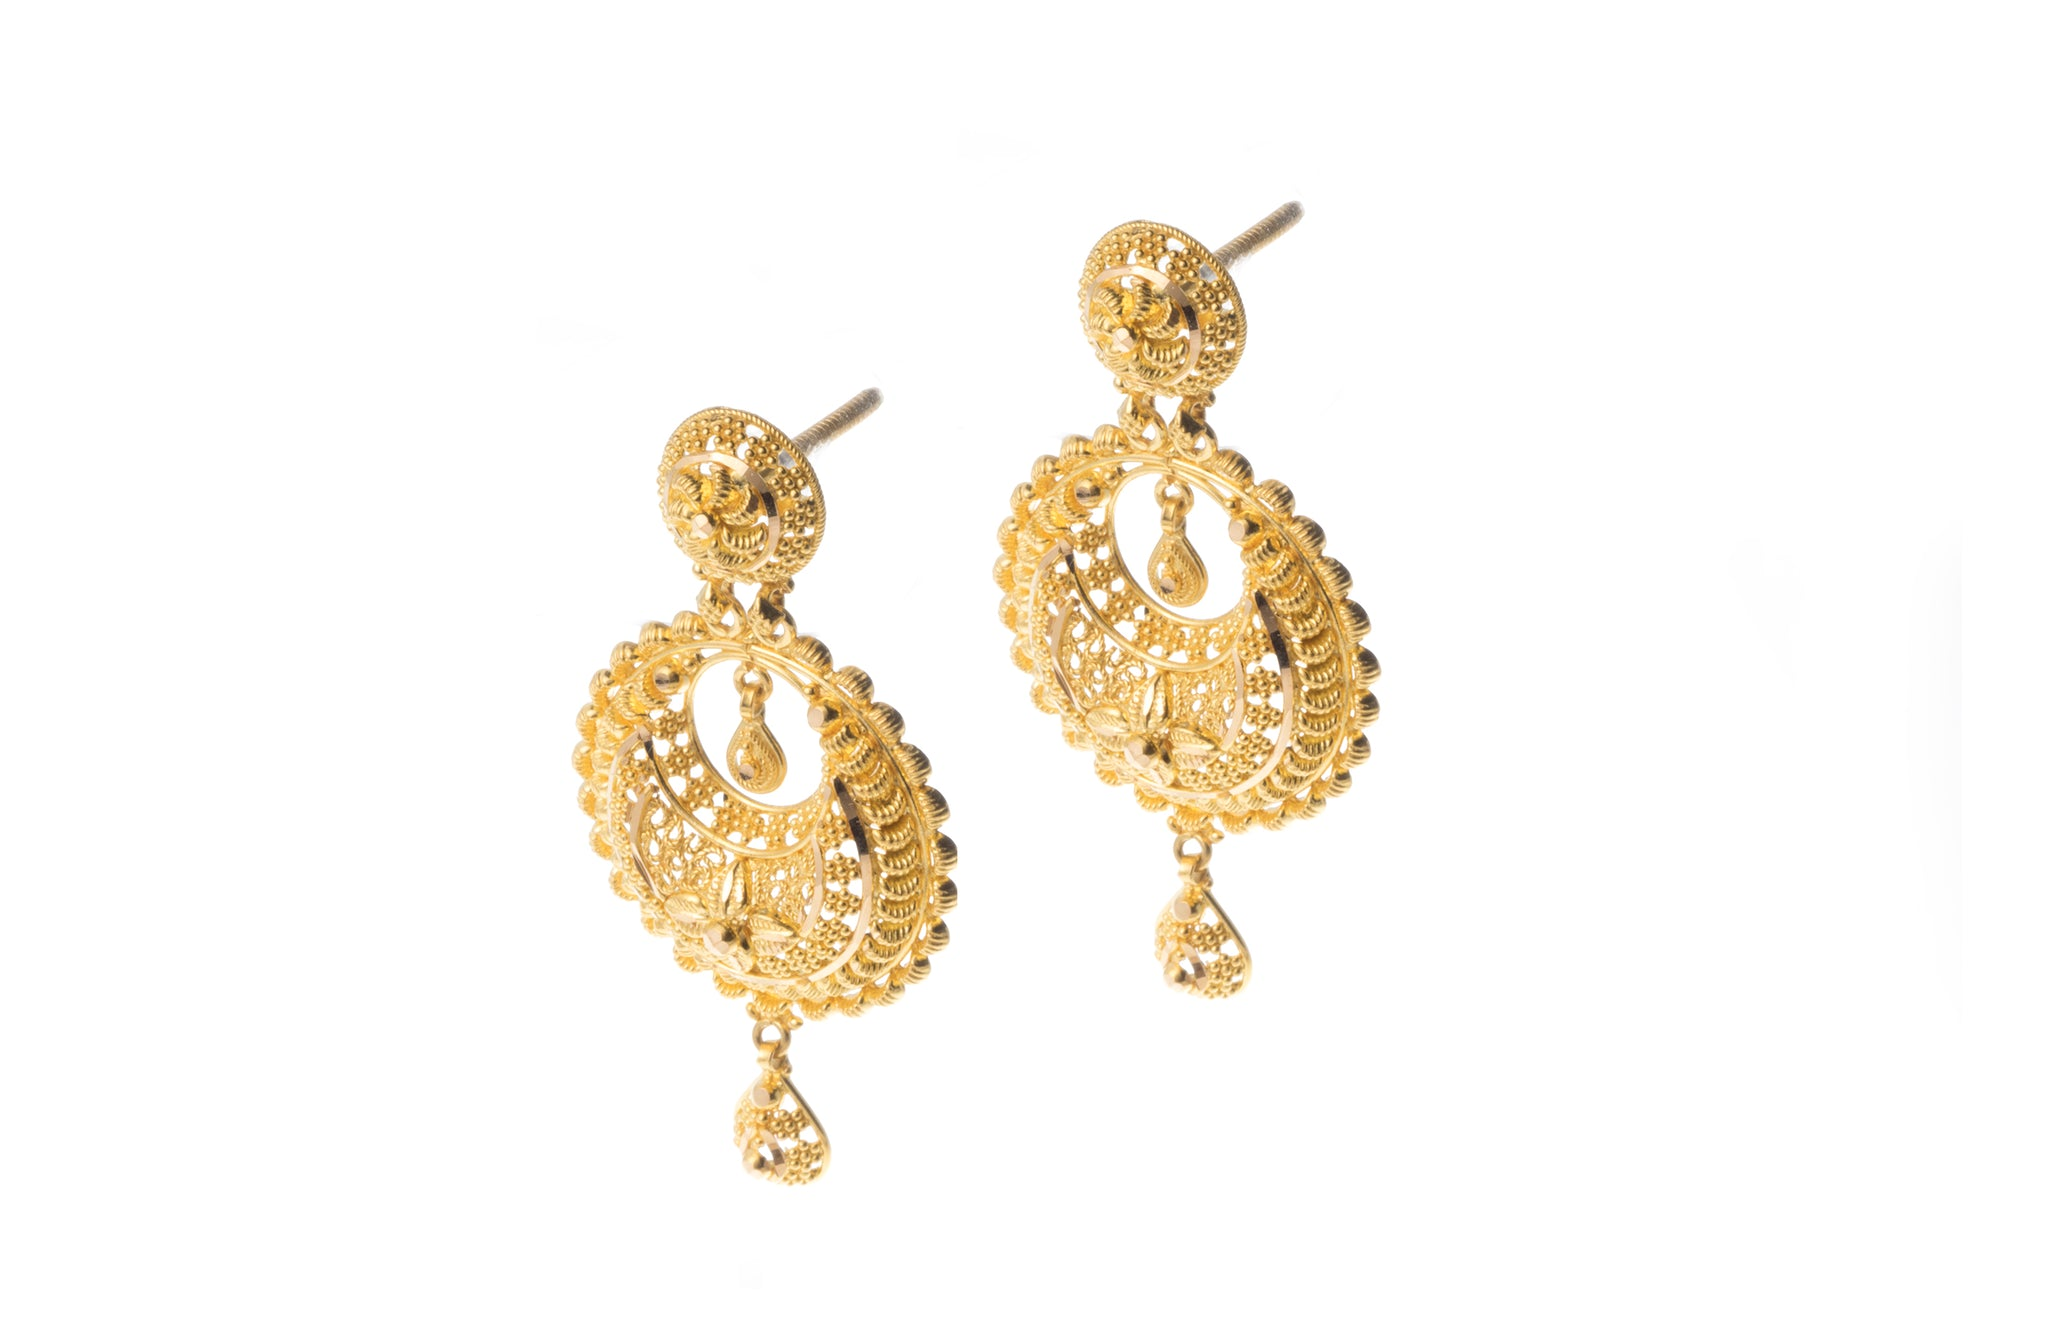 22ct Gold Necklace and Earrings Set with Diamond Cut Filigree Design N&E-7294